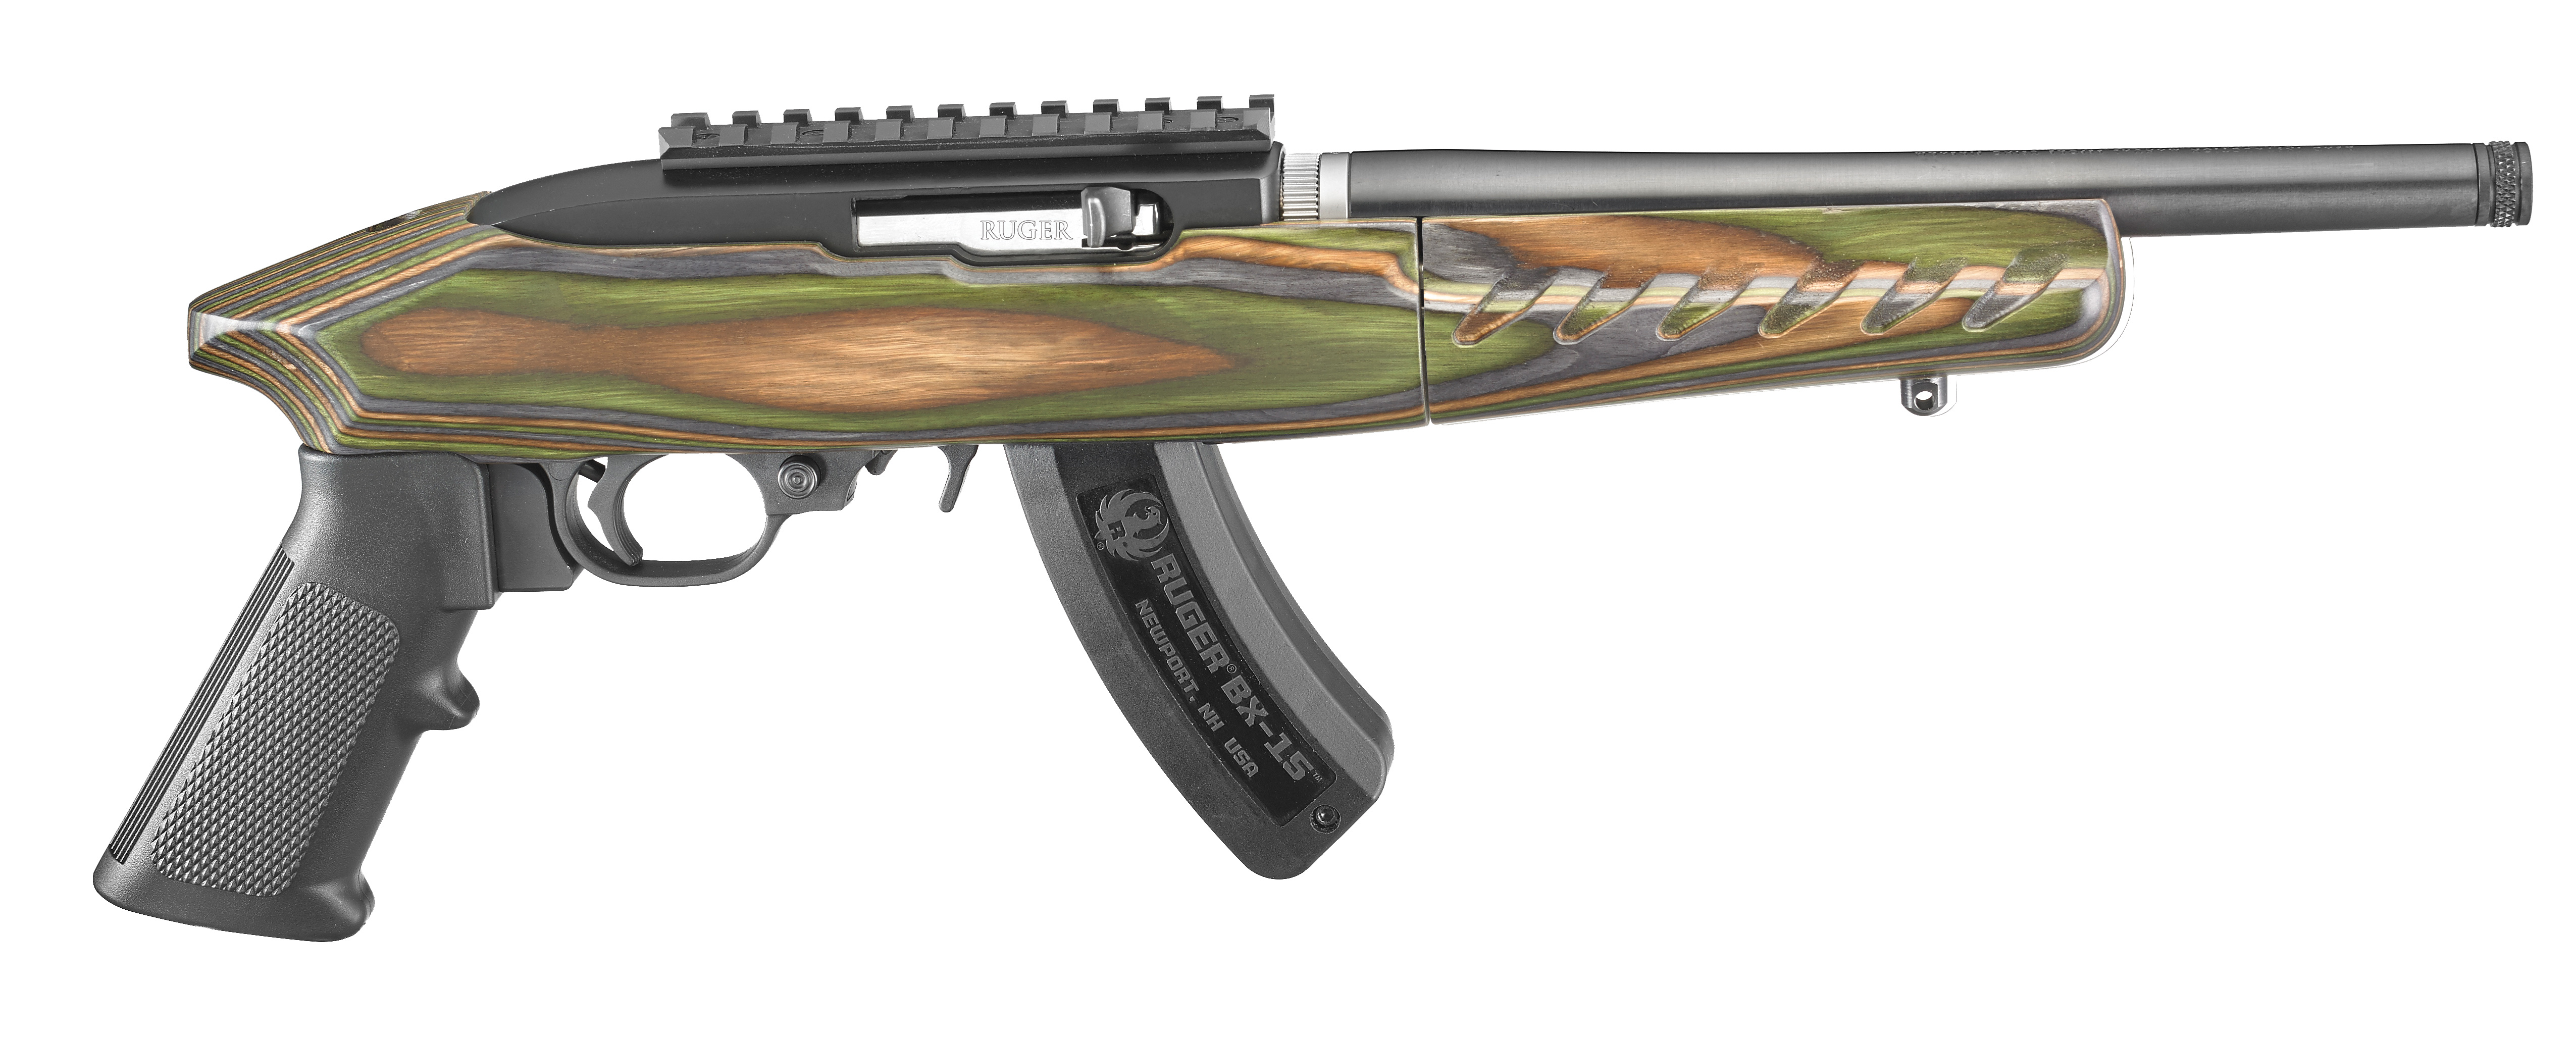 Ruger's Charger Pistoles With A Top Rail On The Receiver For This  Reason,